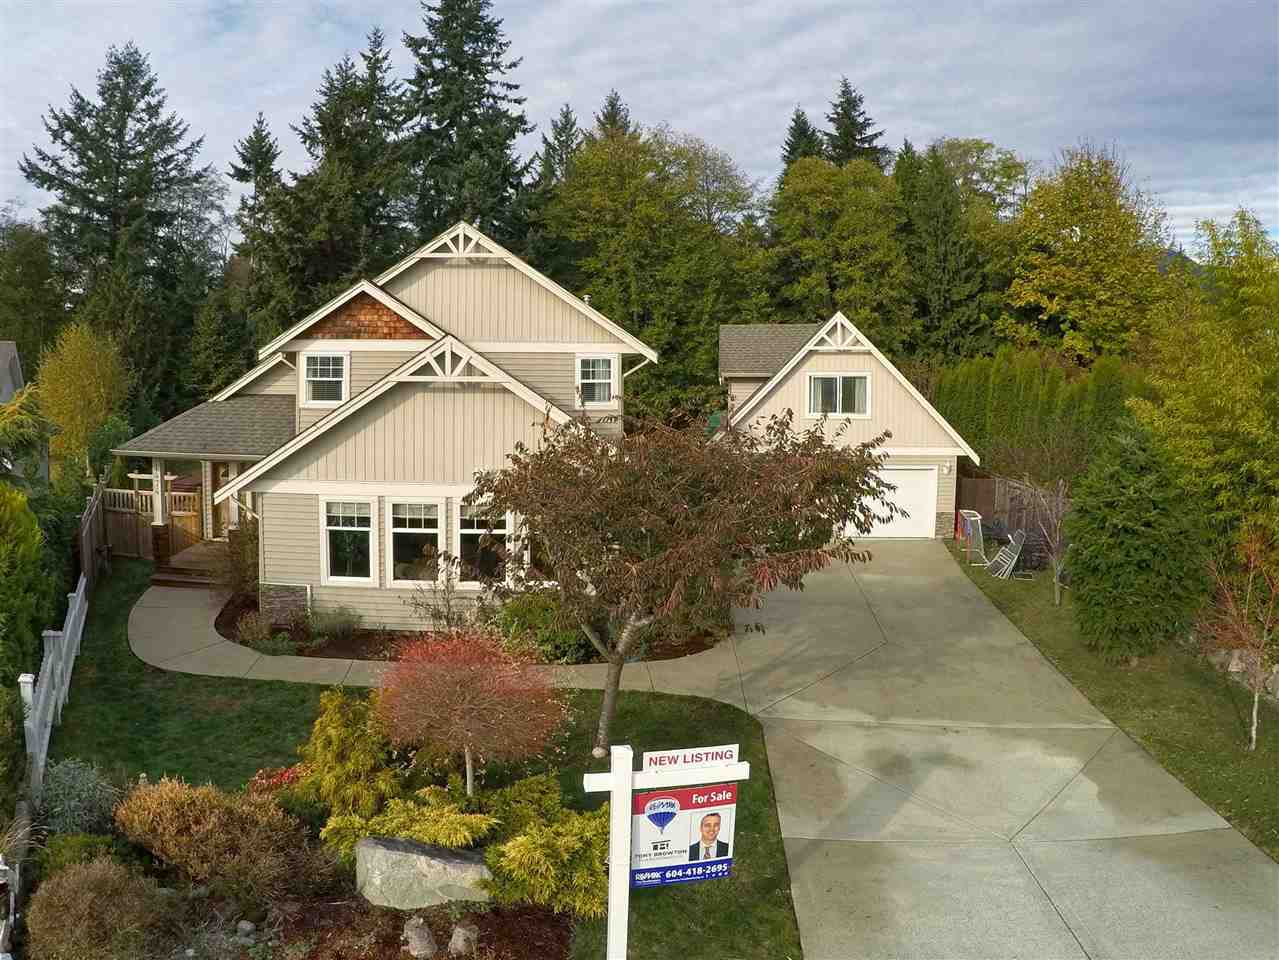 1474 SUNSET PLACE - Gibsons & Area House/Single Family for sale, 4 Bedrooms (R2220208) #1